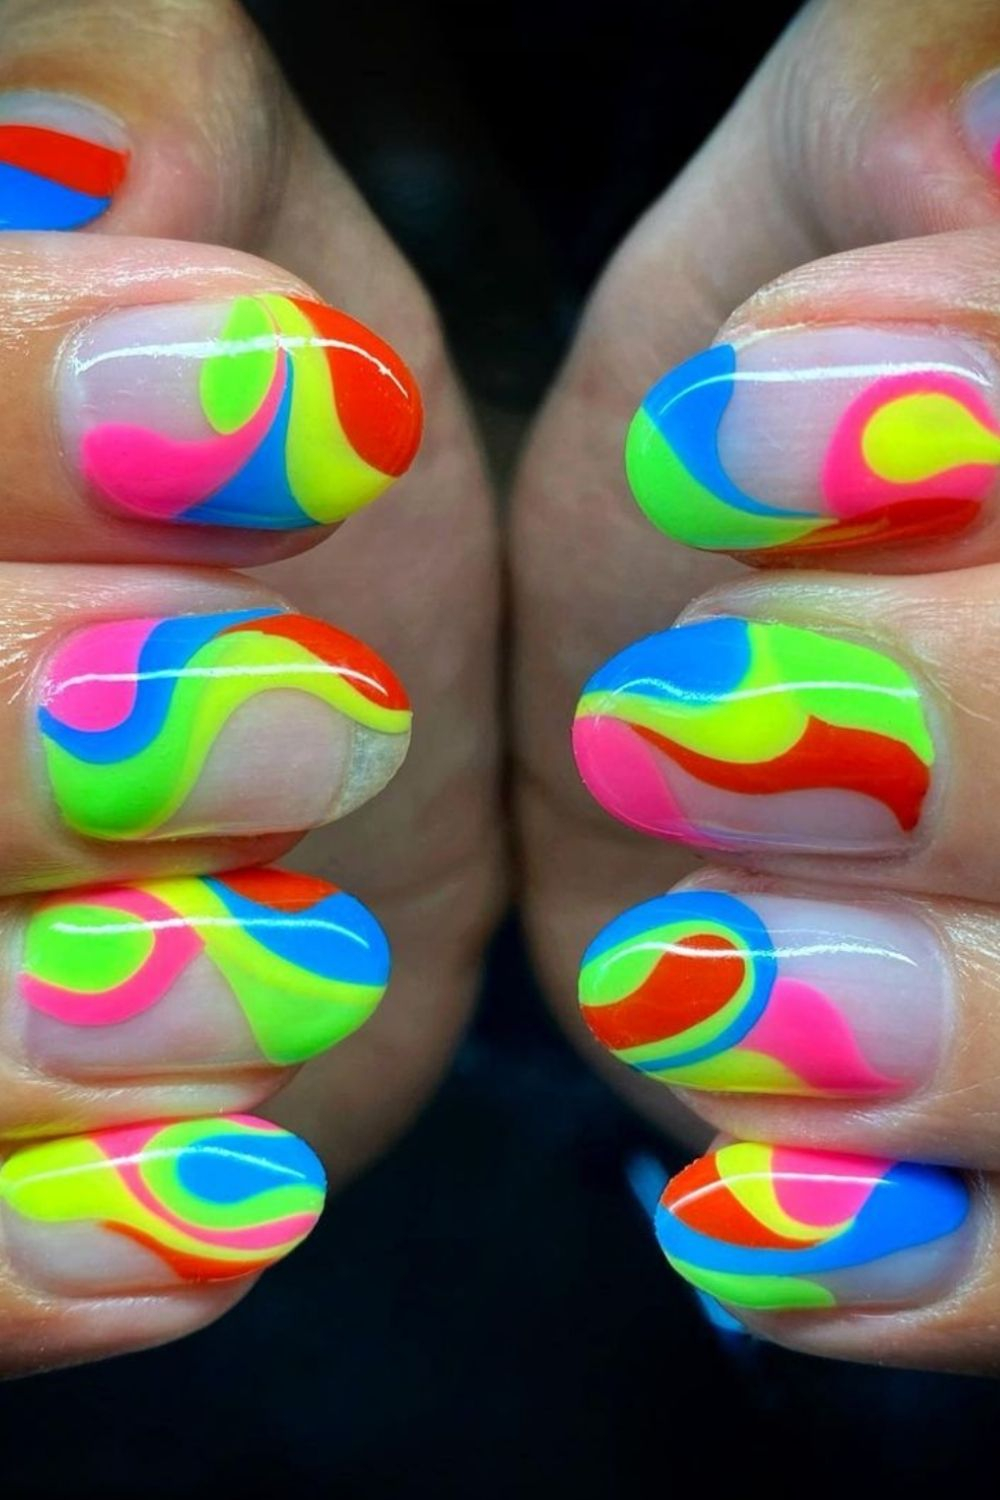 Best Pride acrylic nails 2021 for LGBTQ